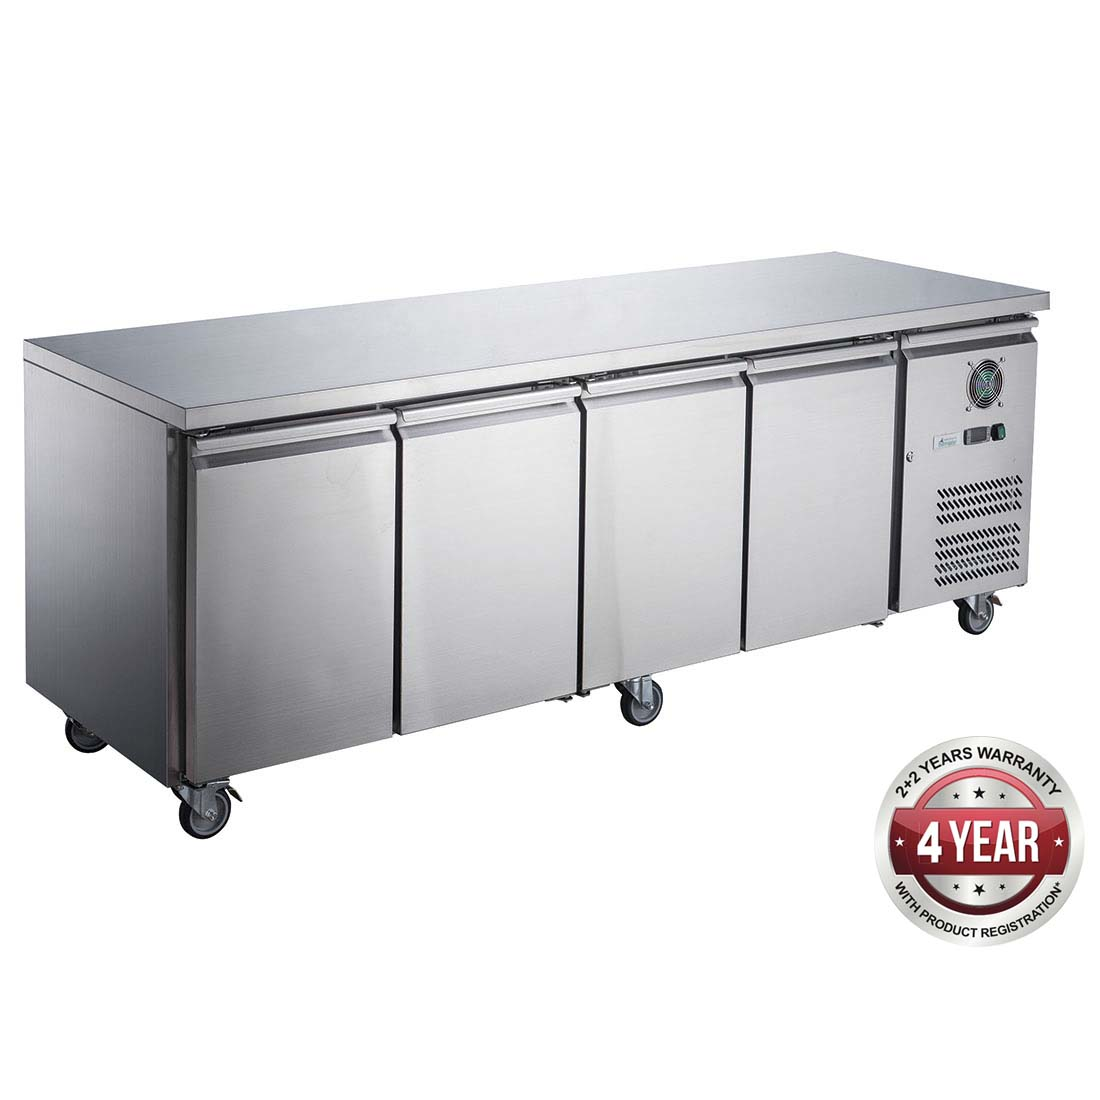 FED-X S/S Four Door Bench Fridge - XUB6C22S4V